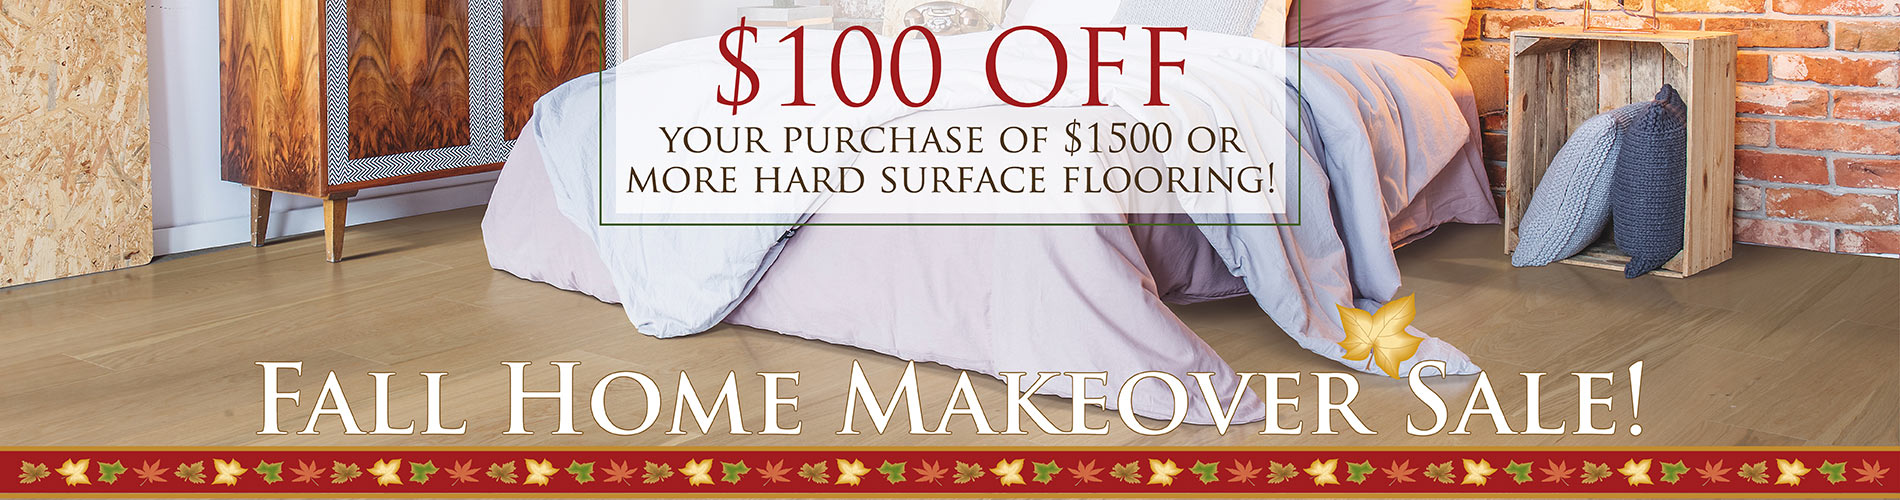 Fall Home Makeover Sale Going On Now! Receive $100 off your purchase of $1,500 or more of hard surface flooring! Only at Abbey Carpet & Floor in Watertown, New York!